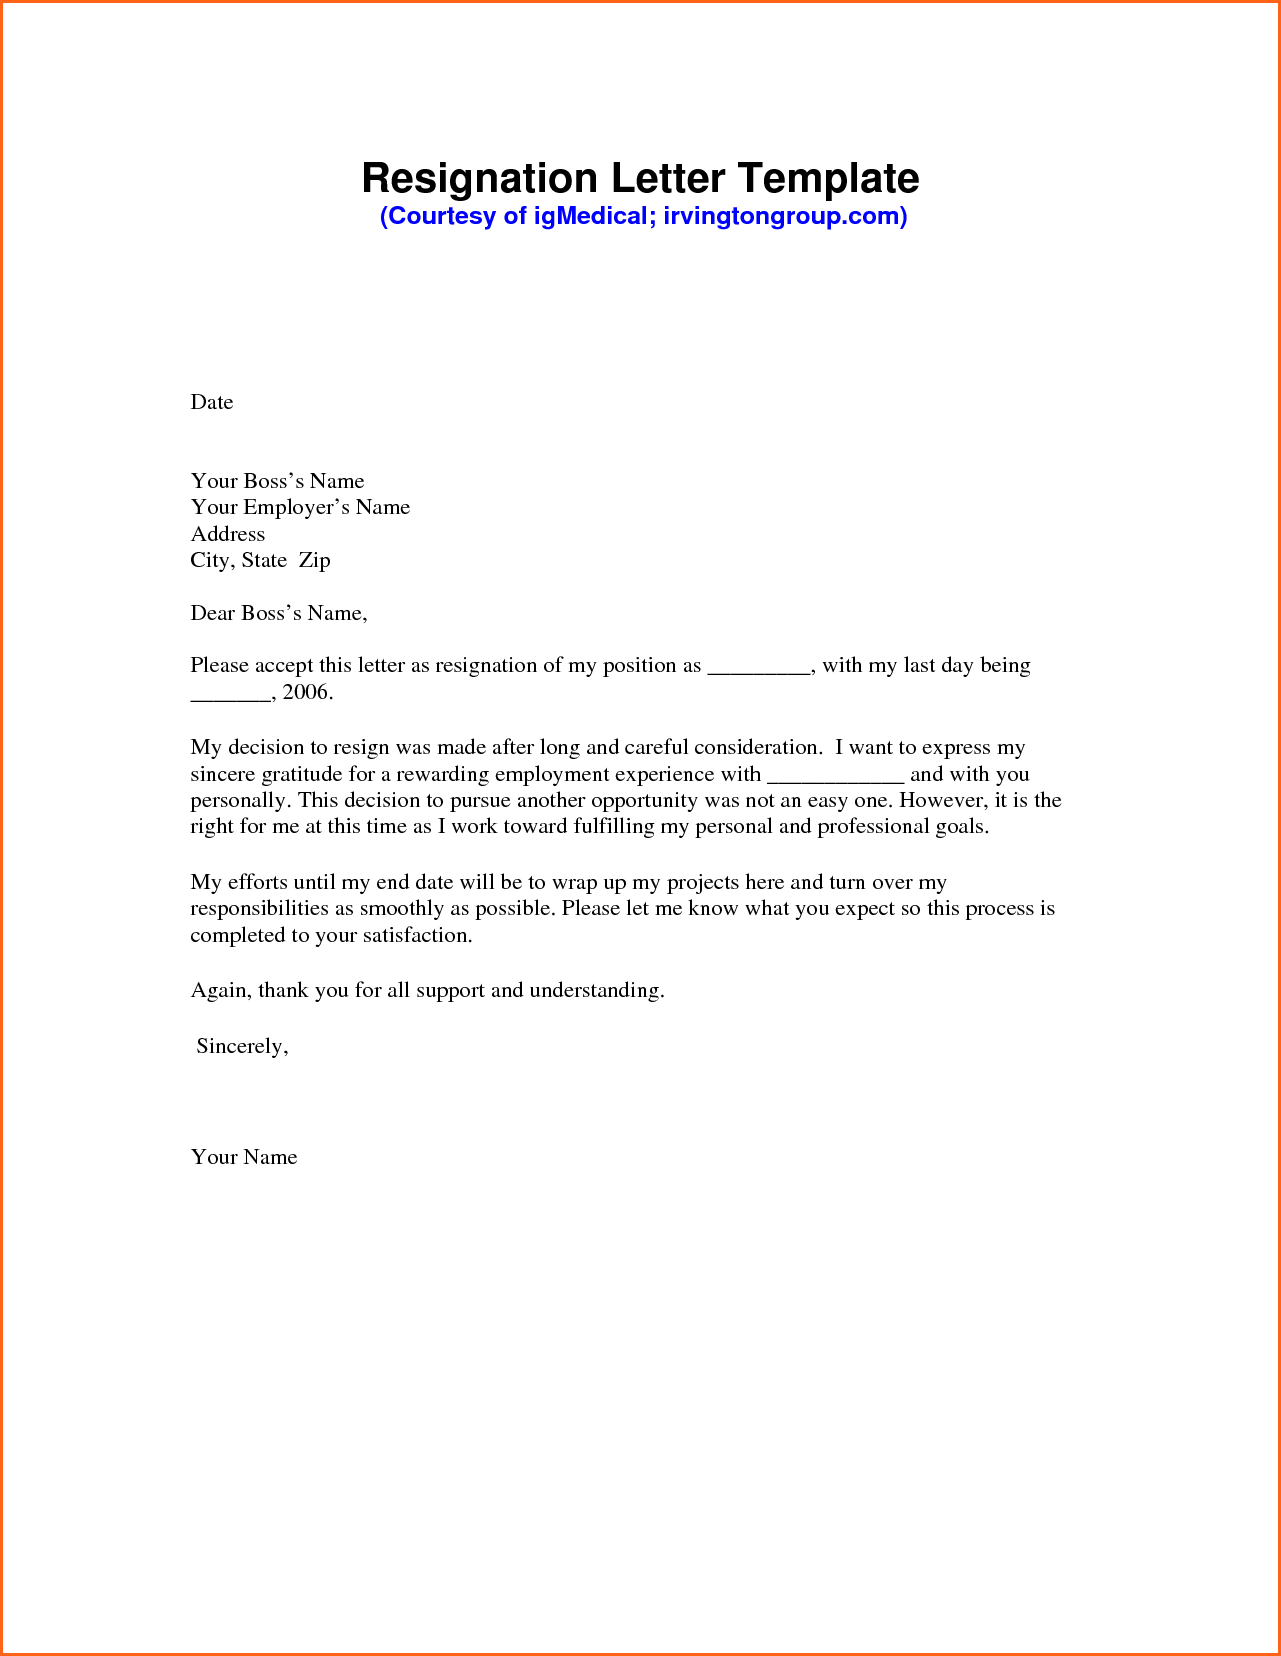 Mechanical Engineering Resume Objective - Resignation Letter Sample Pdf Mechanical Engineering Resume Template